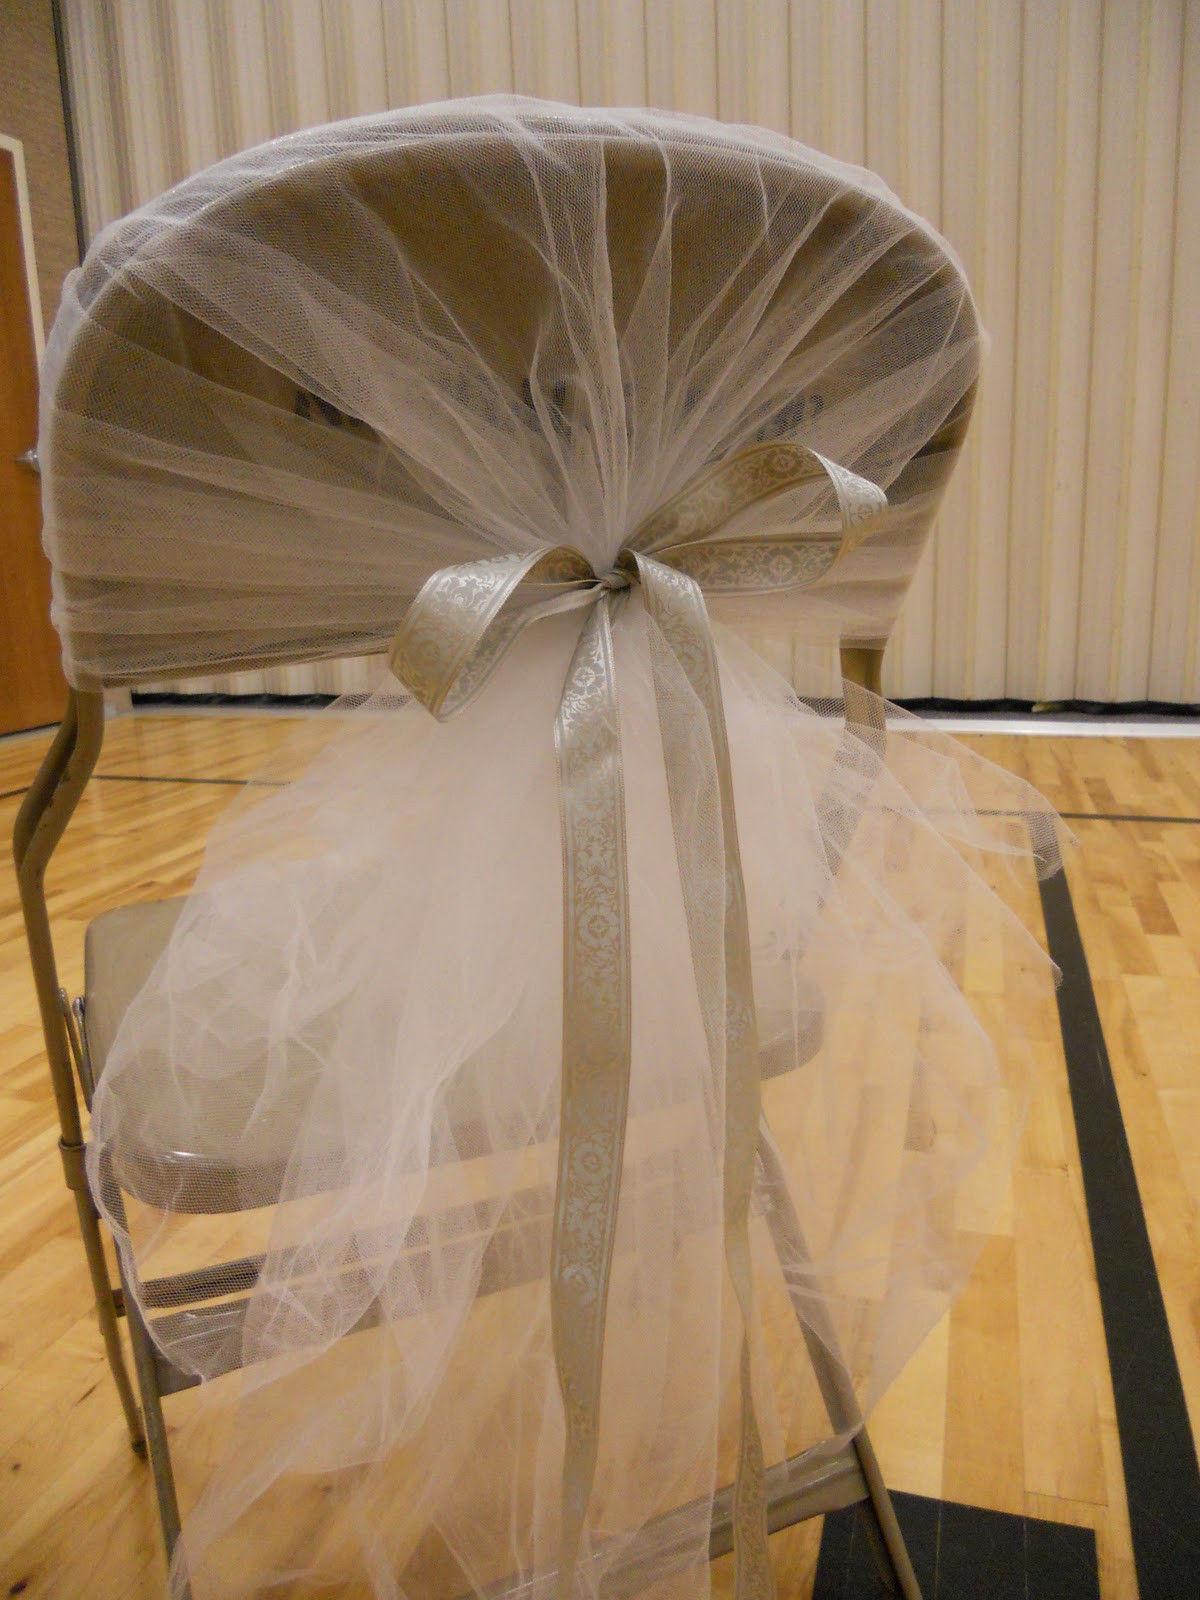 Best ideas about DIY Wedding Chair Covers . Save or Pin bridesdesigner DIY Event Decor Now.